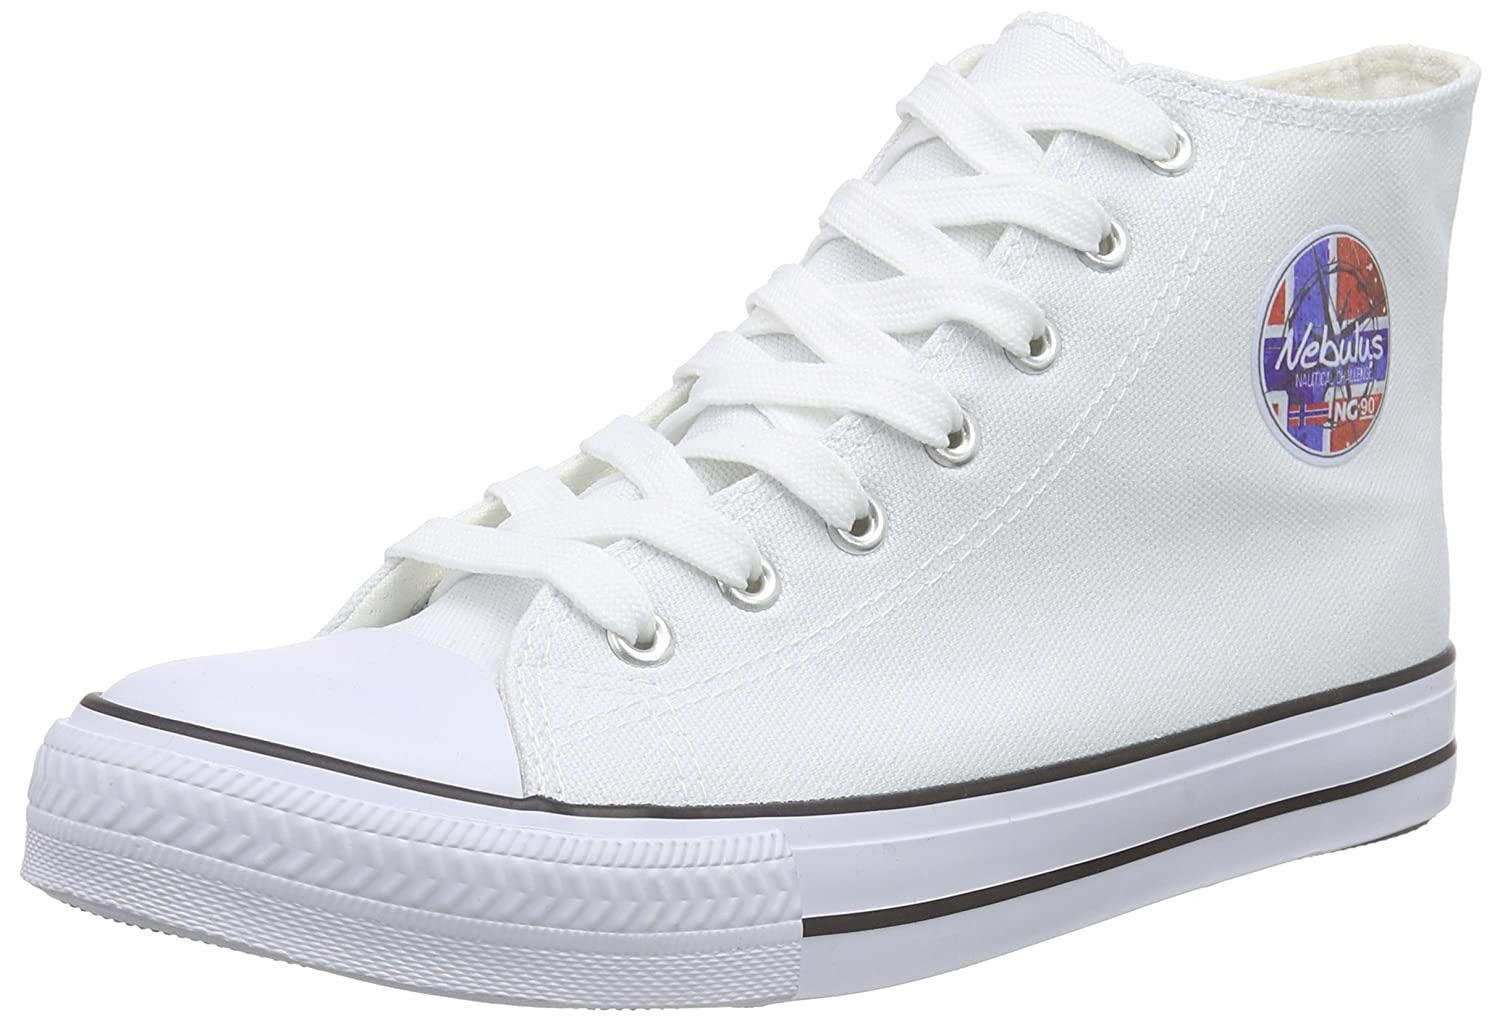 Nebulus Baskets Jersey, Baskets 10495 Basses Femme Femme Wei? (White) ca5be21 - boatplans.space